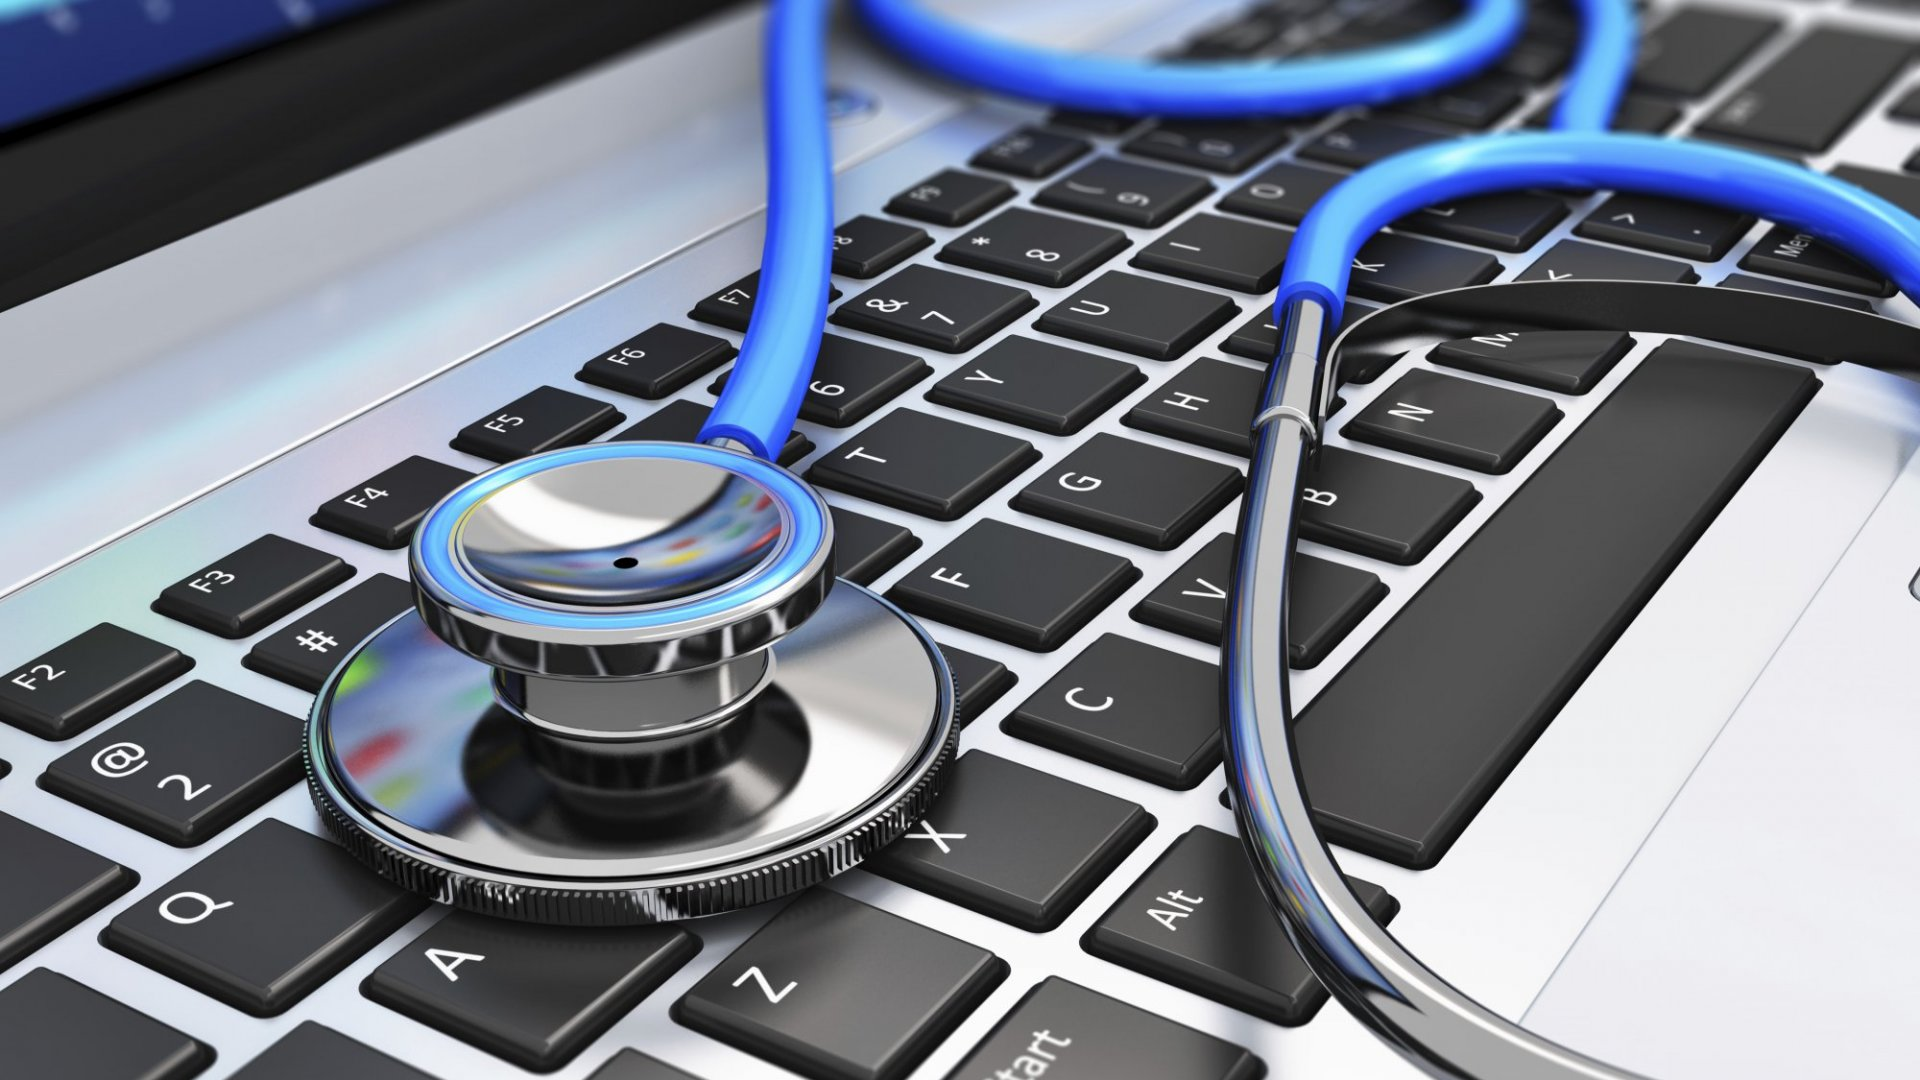 Why Health Care Companies Need to Do More to Protect Your Data